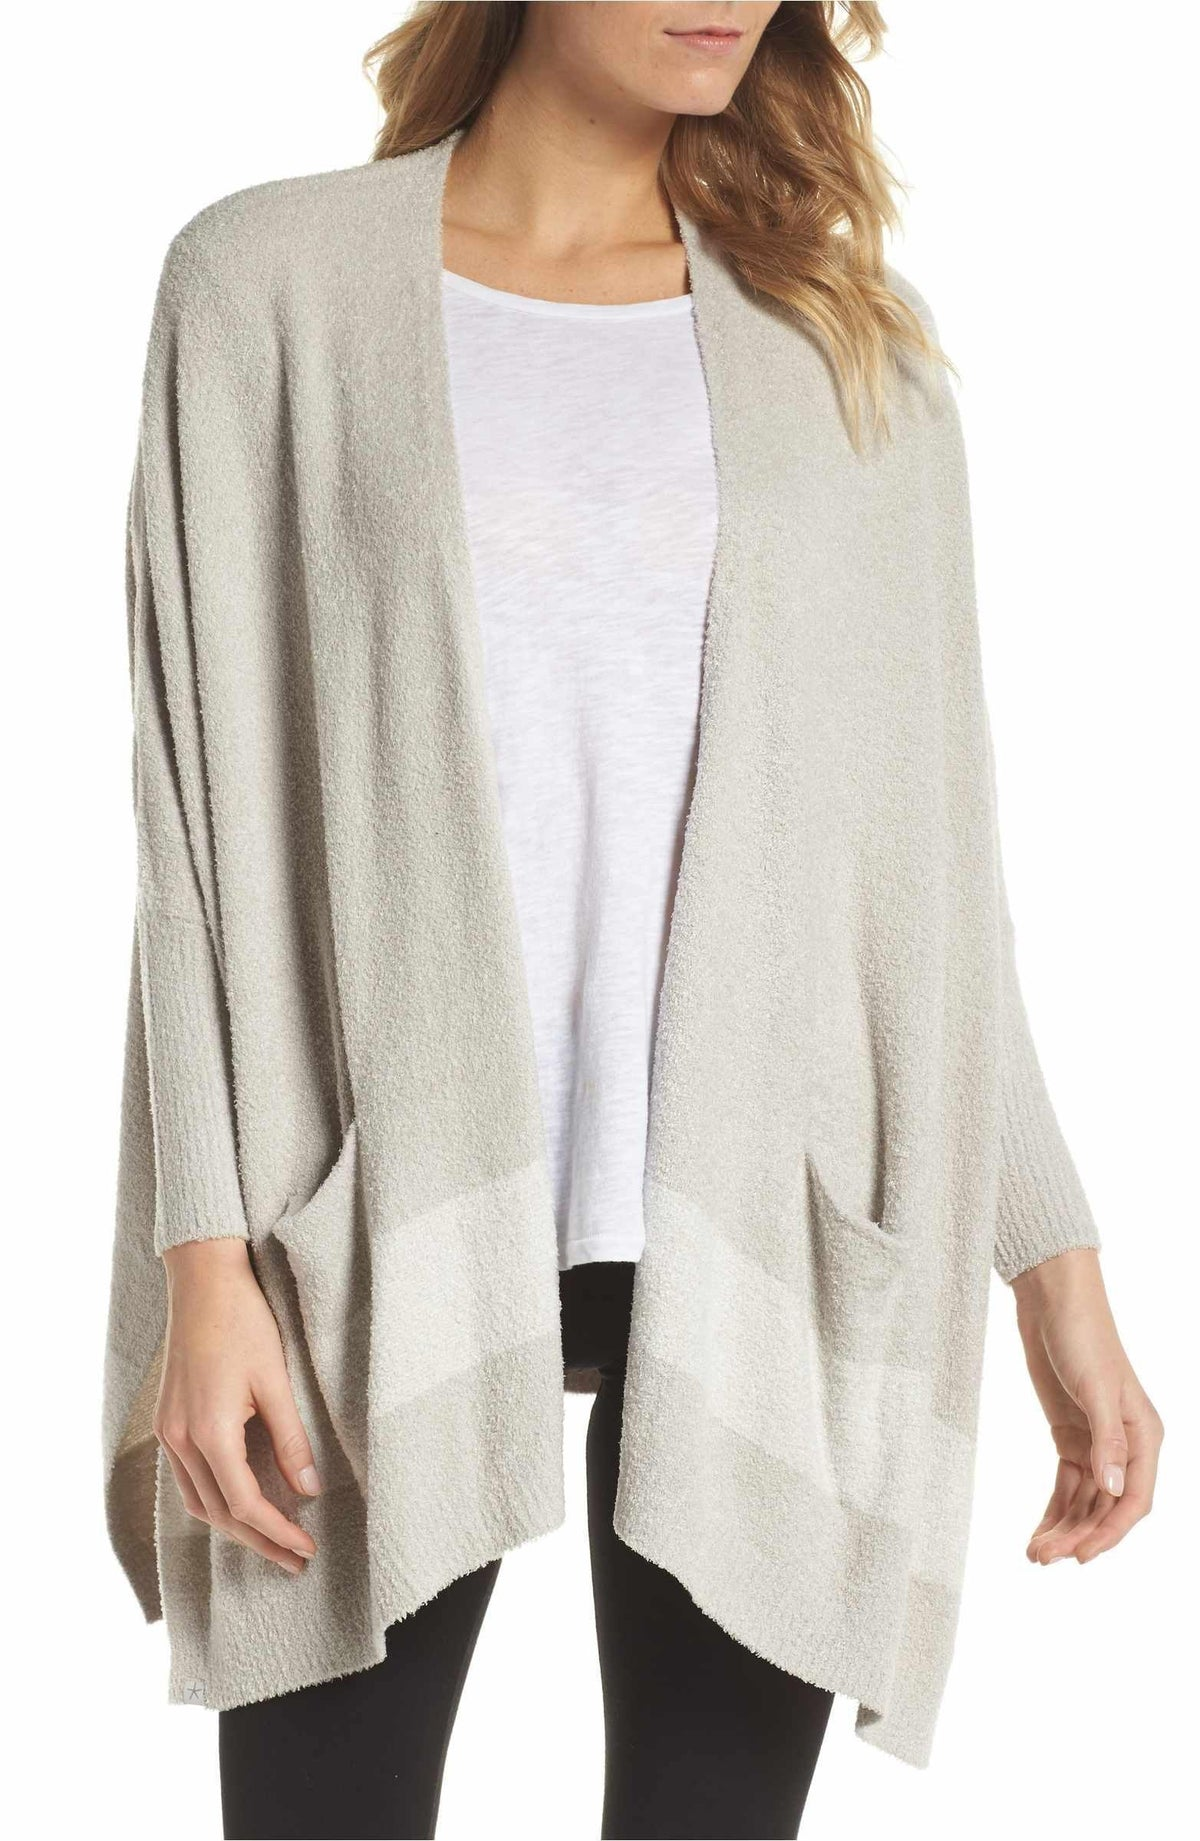 Cliffside Wrap - Silver - Wheat Boutique